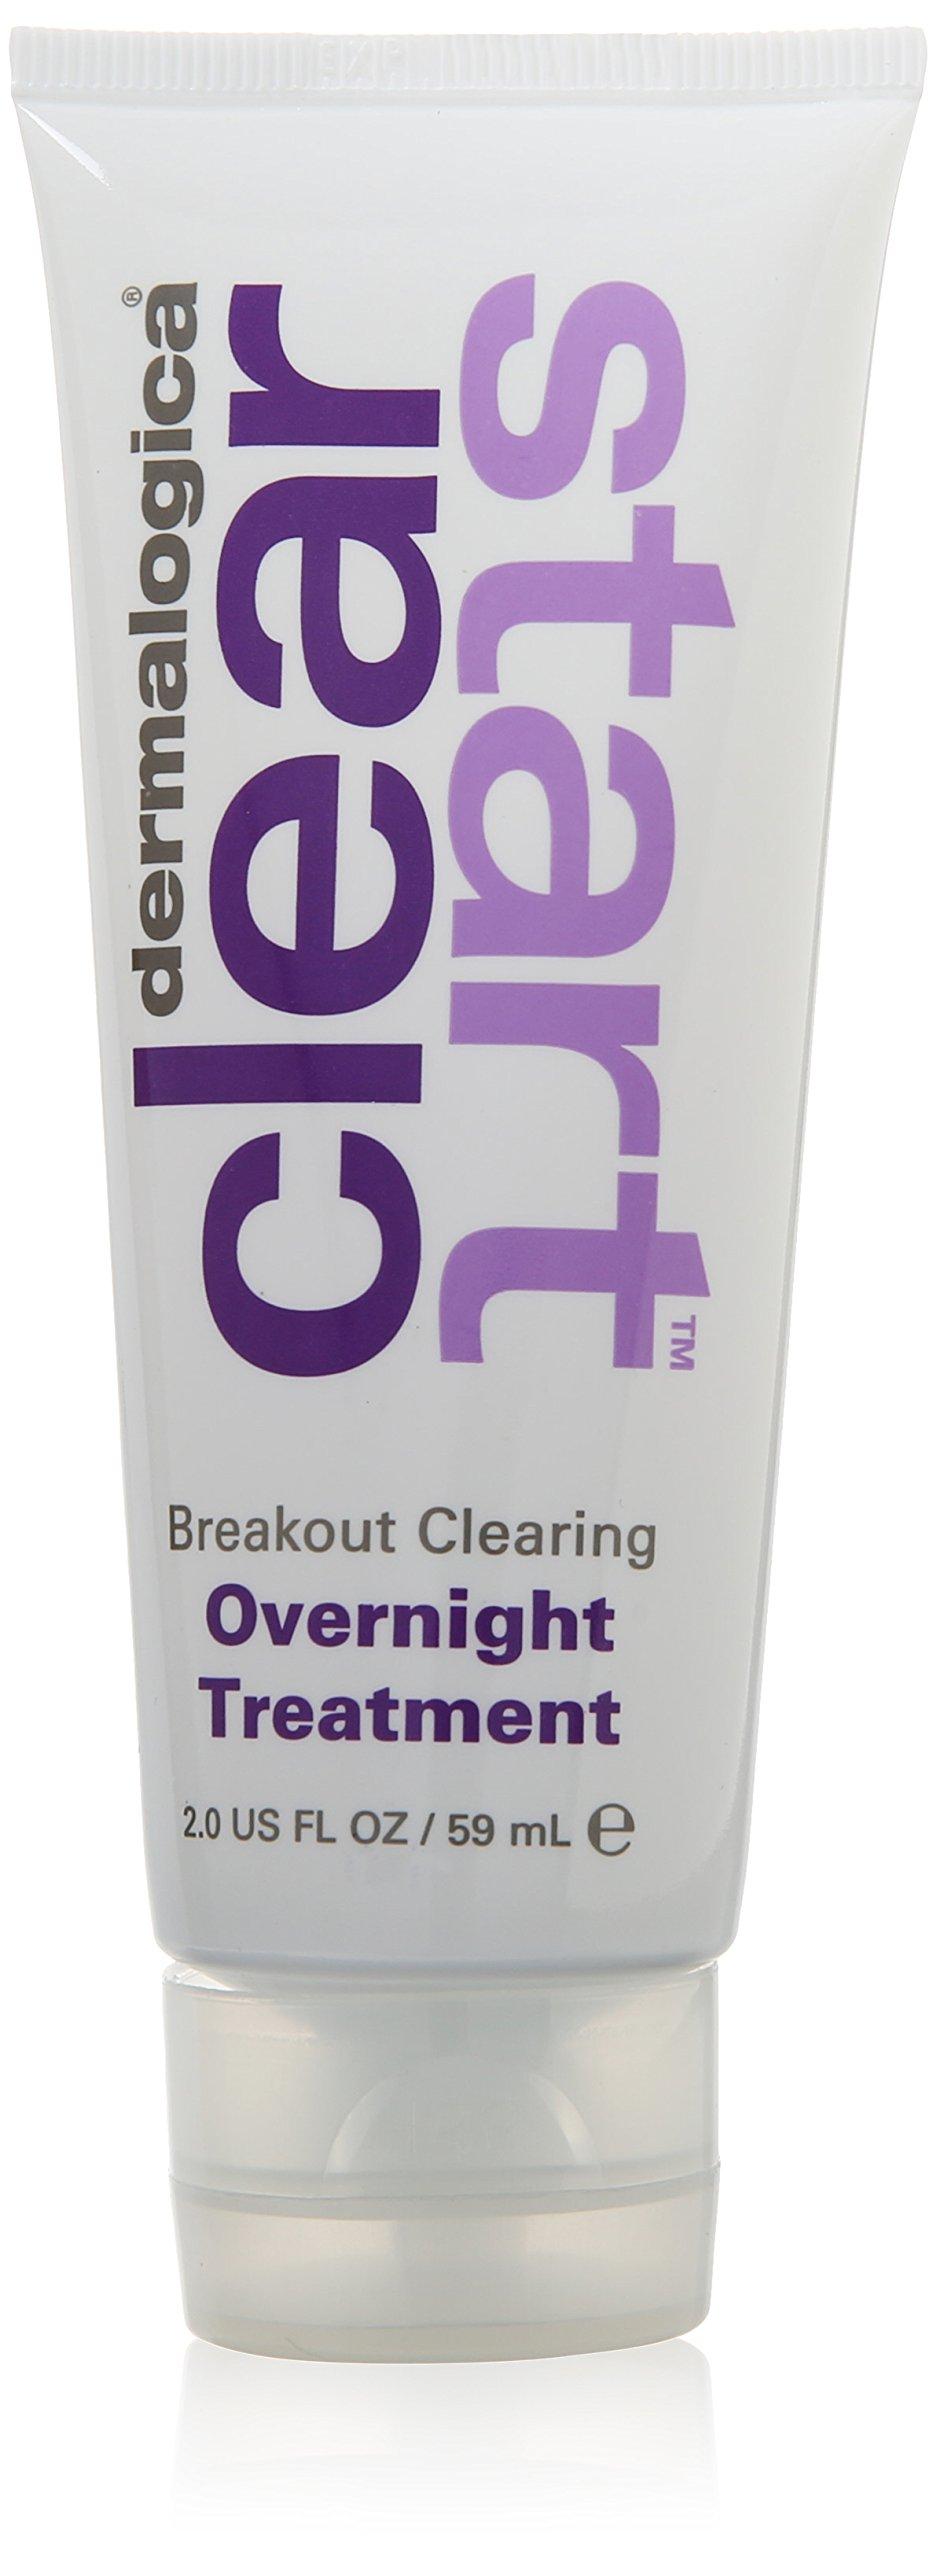 Dermalogica Breakout Clearing Overnight Treatment, 2 Fluid Ounce